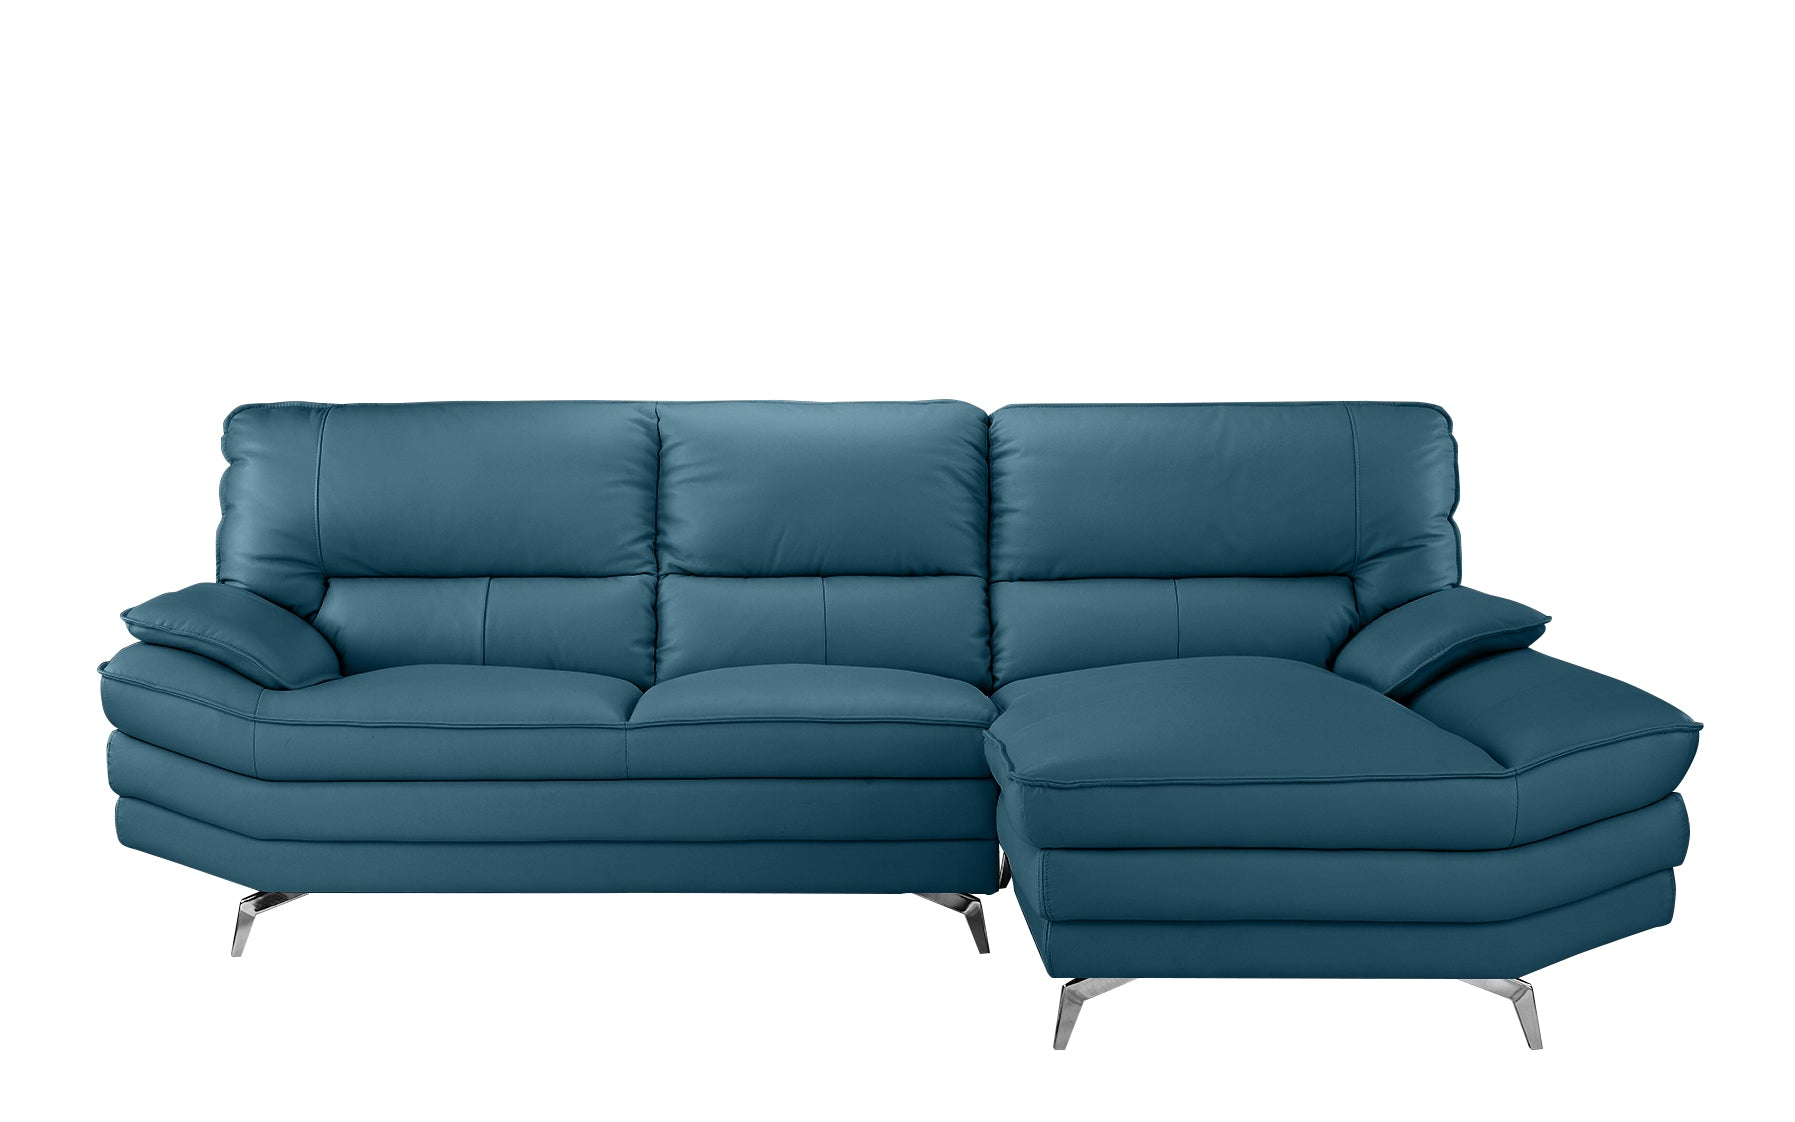 Leather Sectional Sofa Image